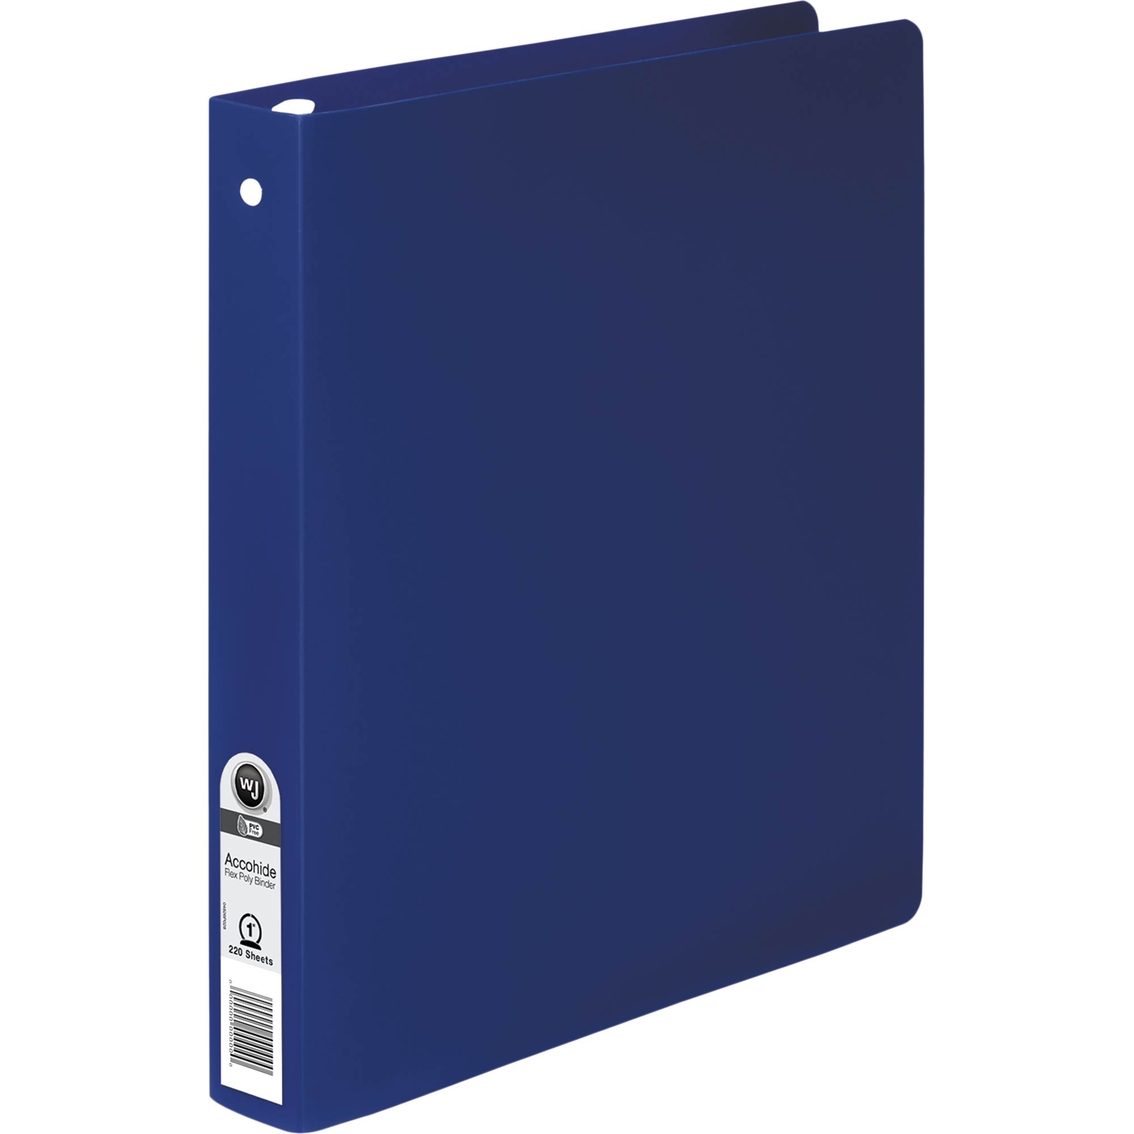 Acco Accohide Poly Round Ring Binder, 35-pt. Cover, 1 In